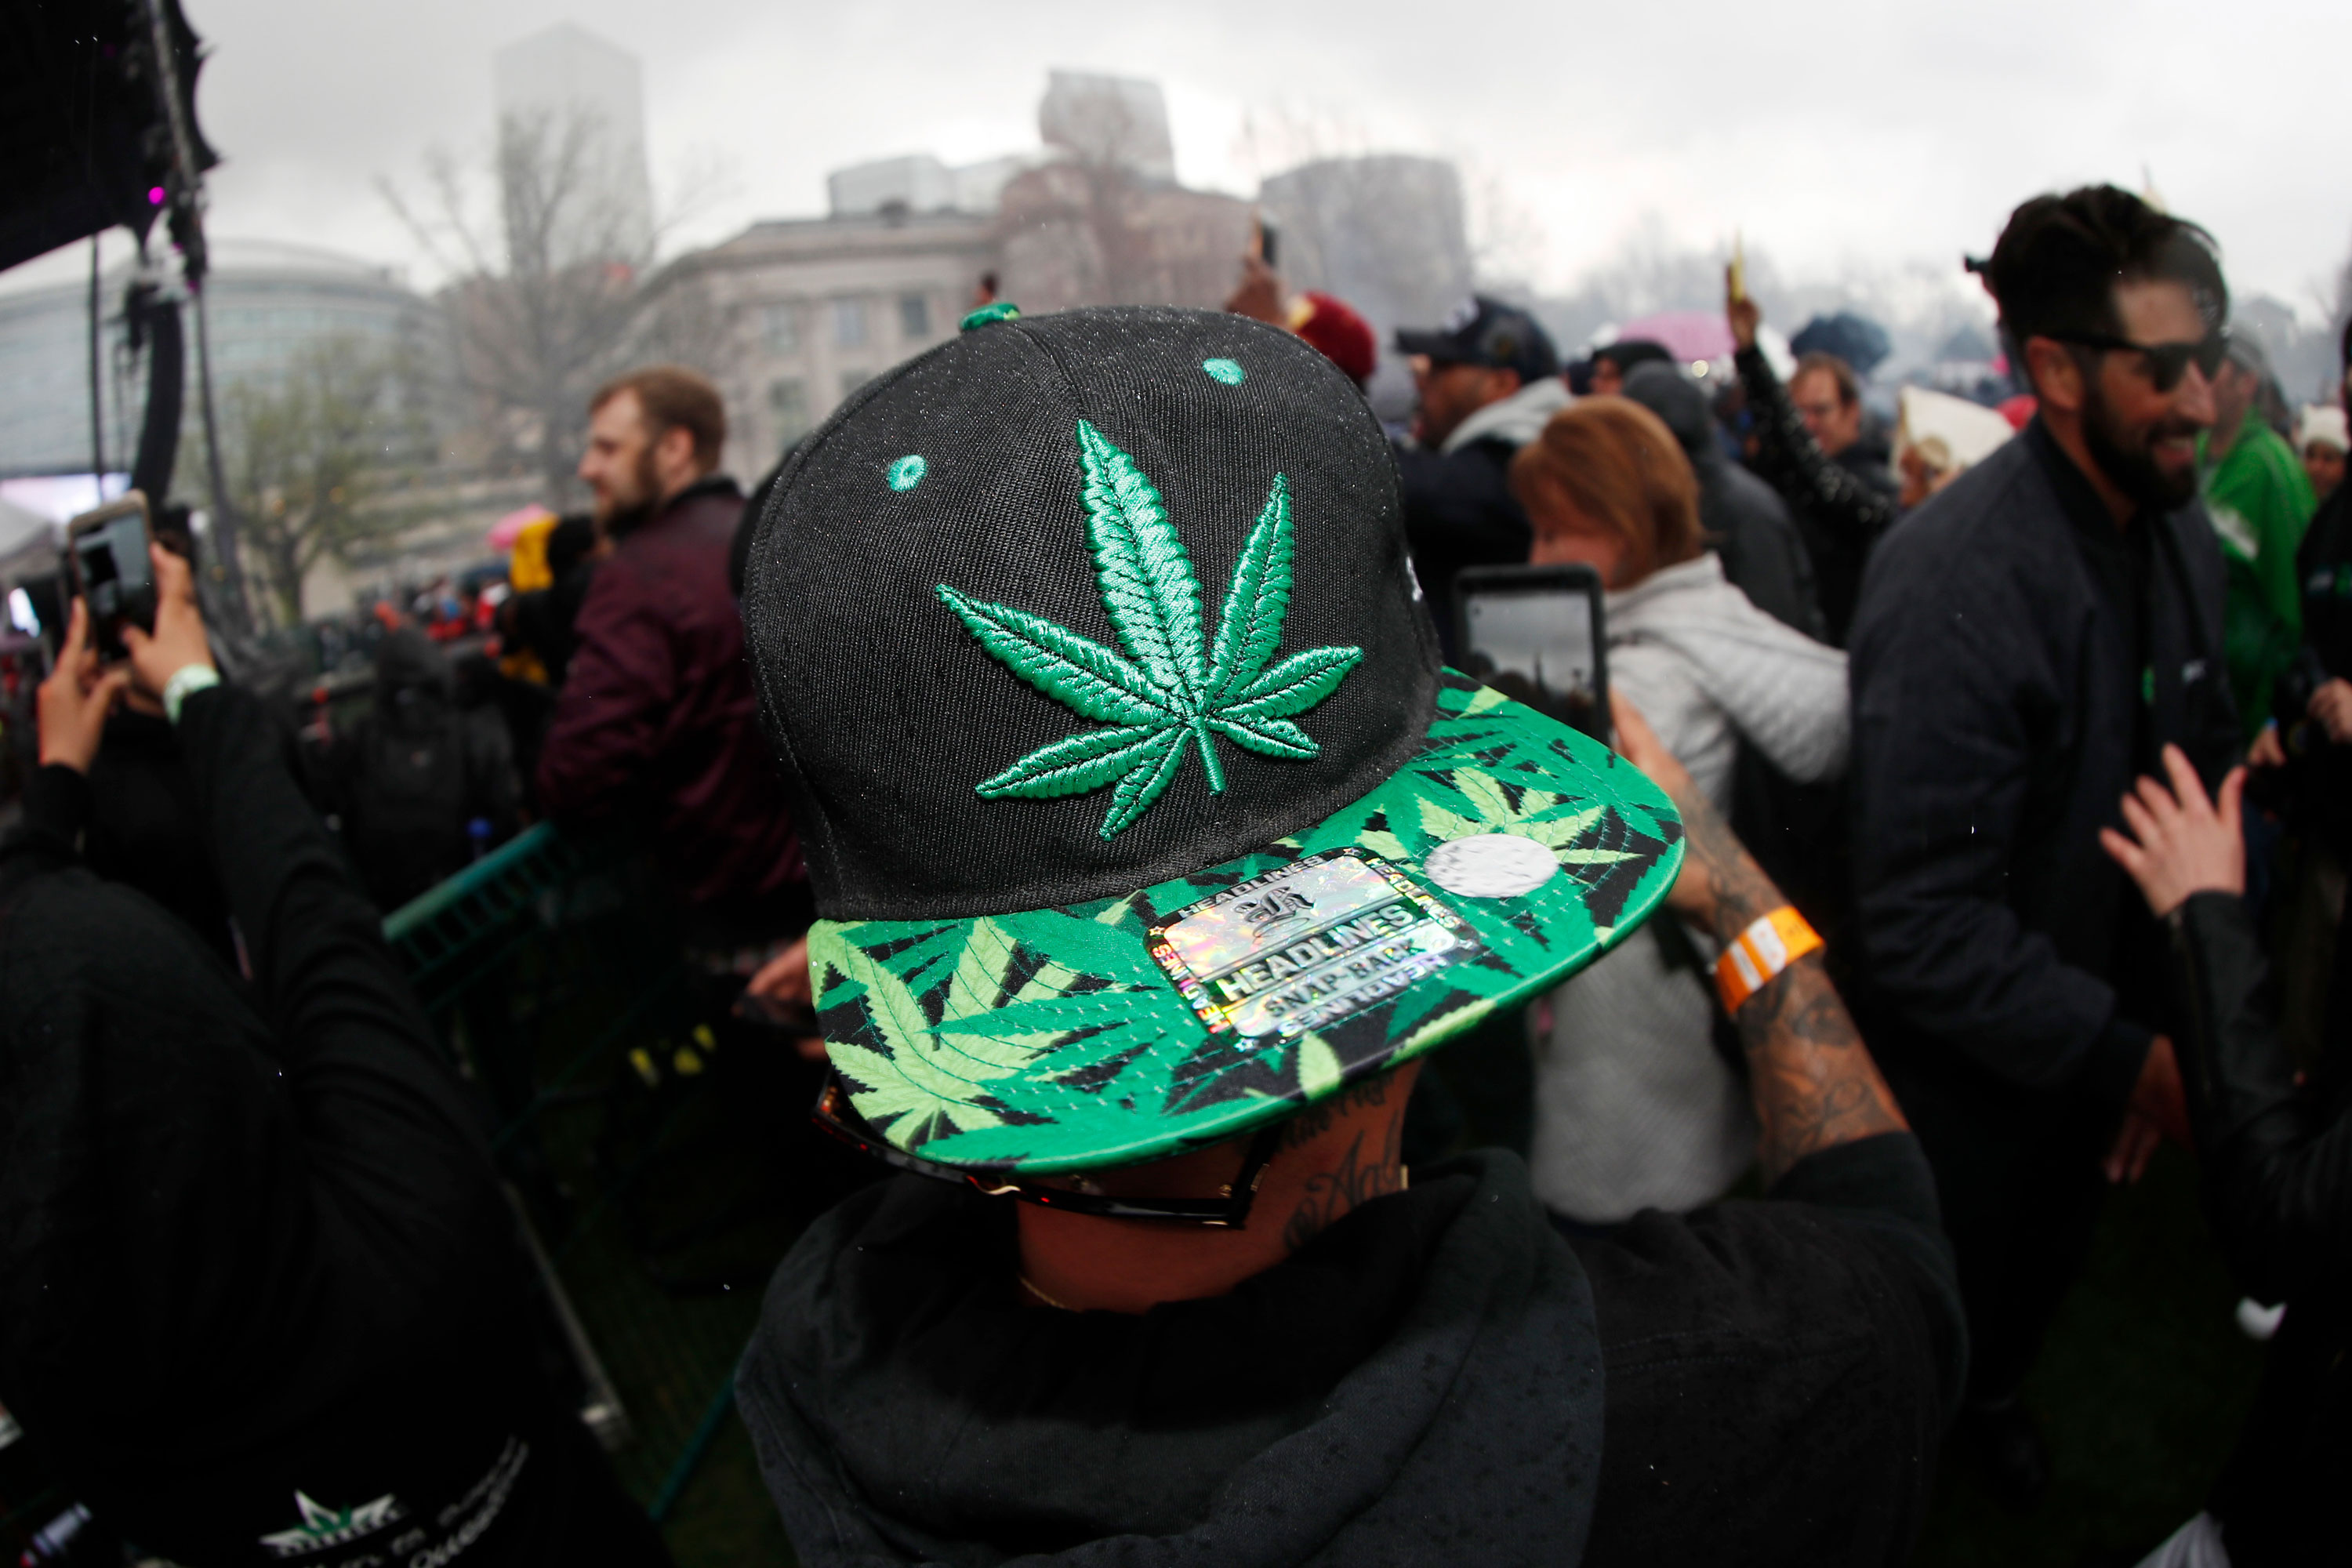 In this April 20, 2018 file photo, an attendee celebrates at 4:20 p.m. by lighting up marijuana during the Mile High 420 Festival in Denver. New research has found some Colorado teenagers who use marijuana are shifting away from smoking it in favor of edible products.